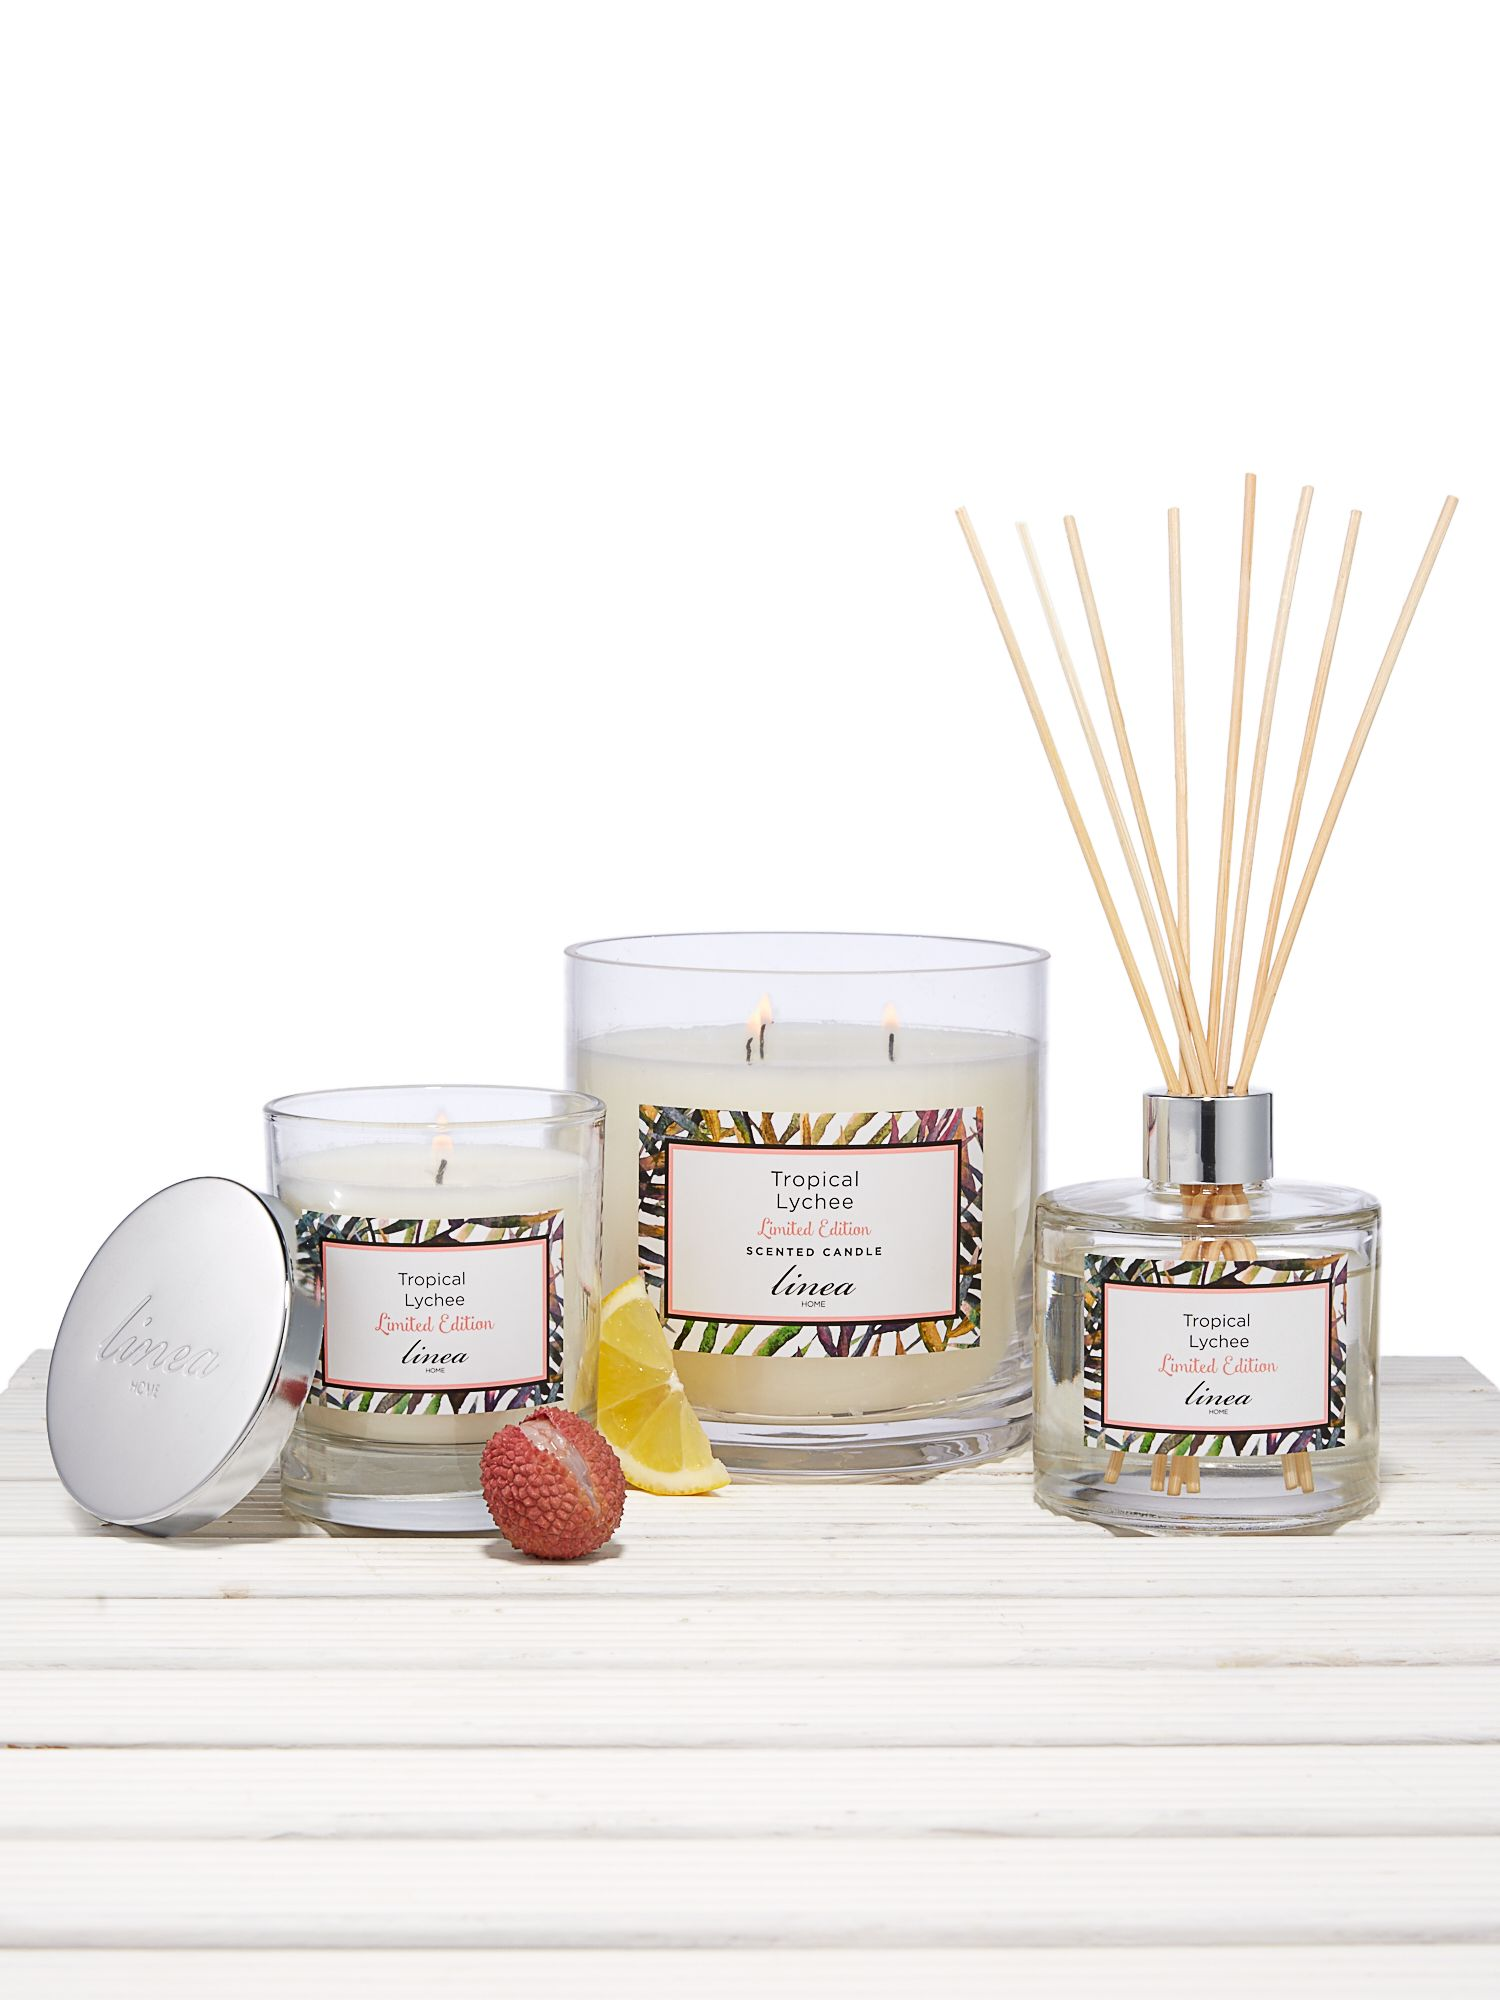 Cheap Scented Candles Buy Cheap Musk Scented Candle Compare Products Prices